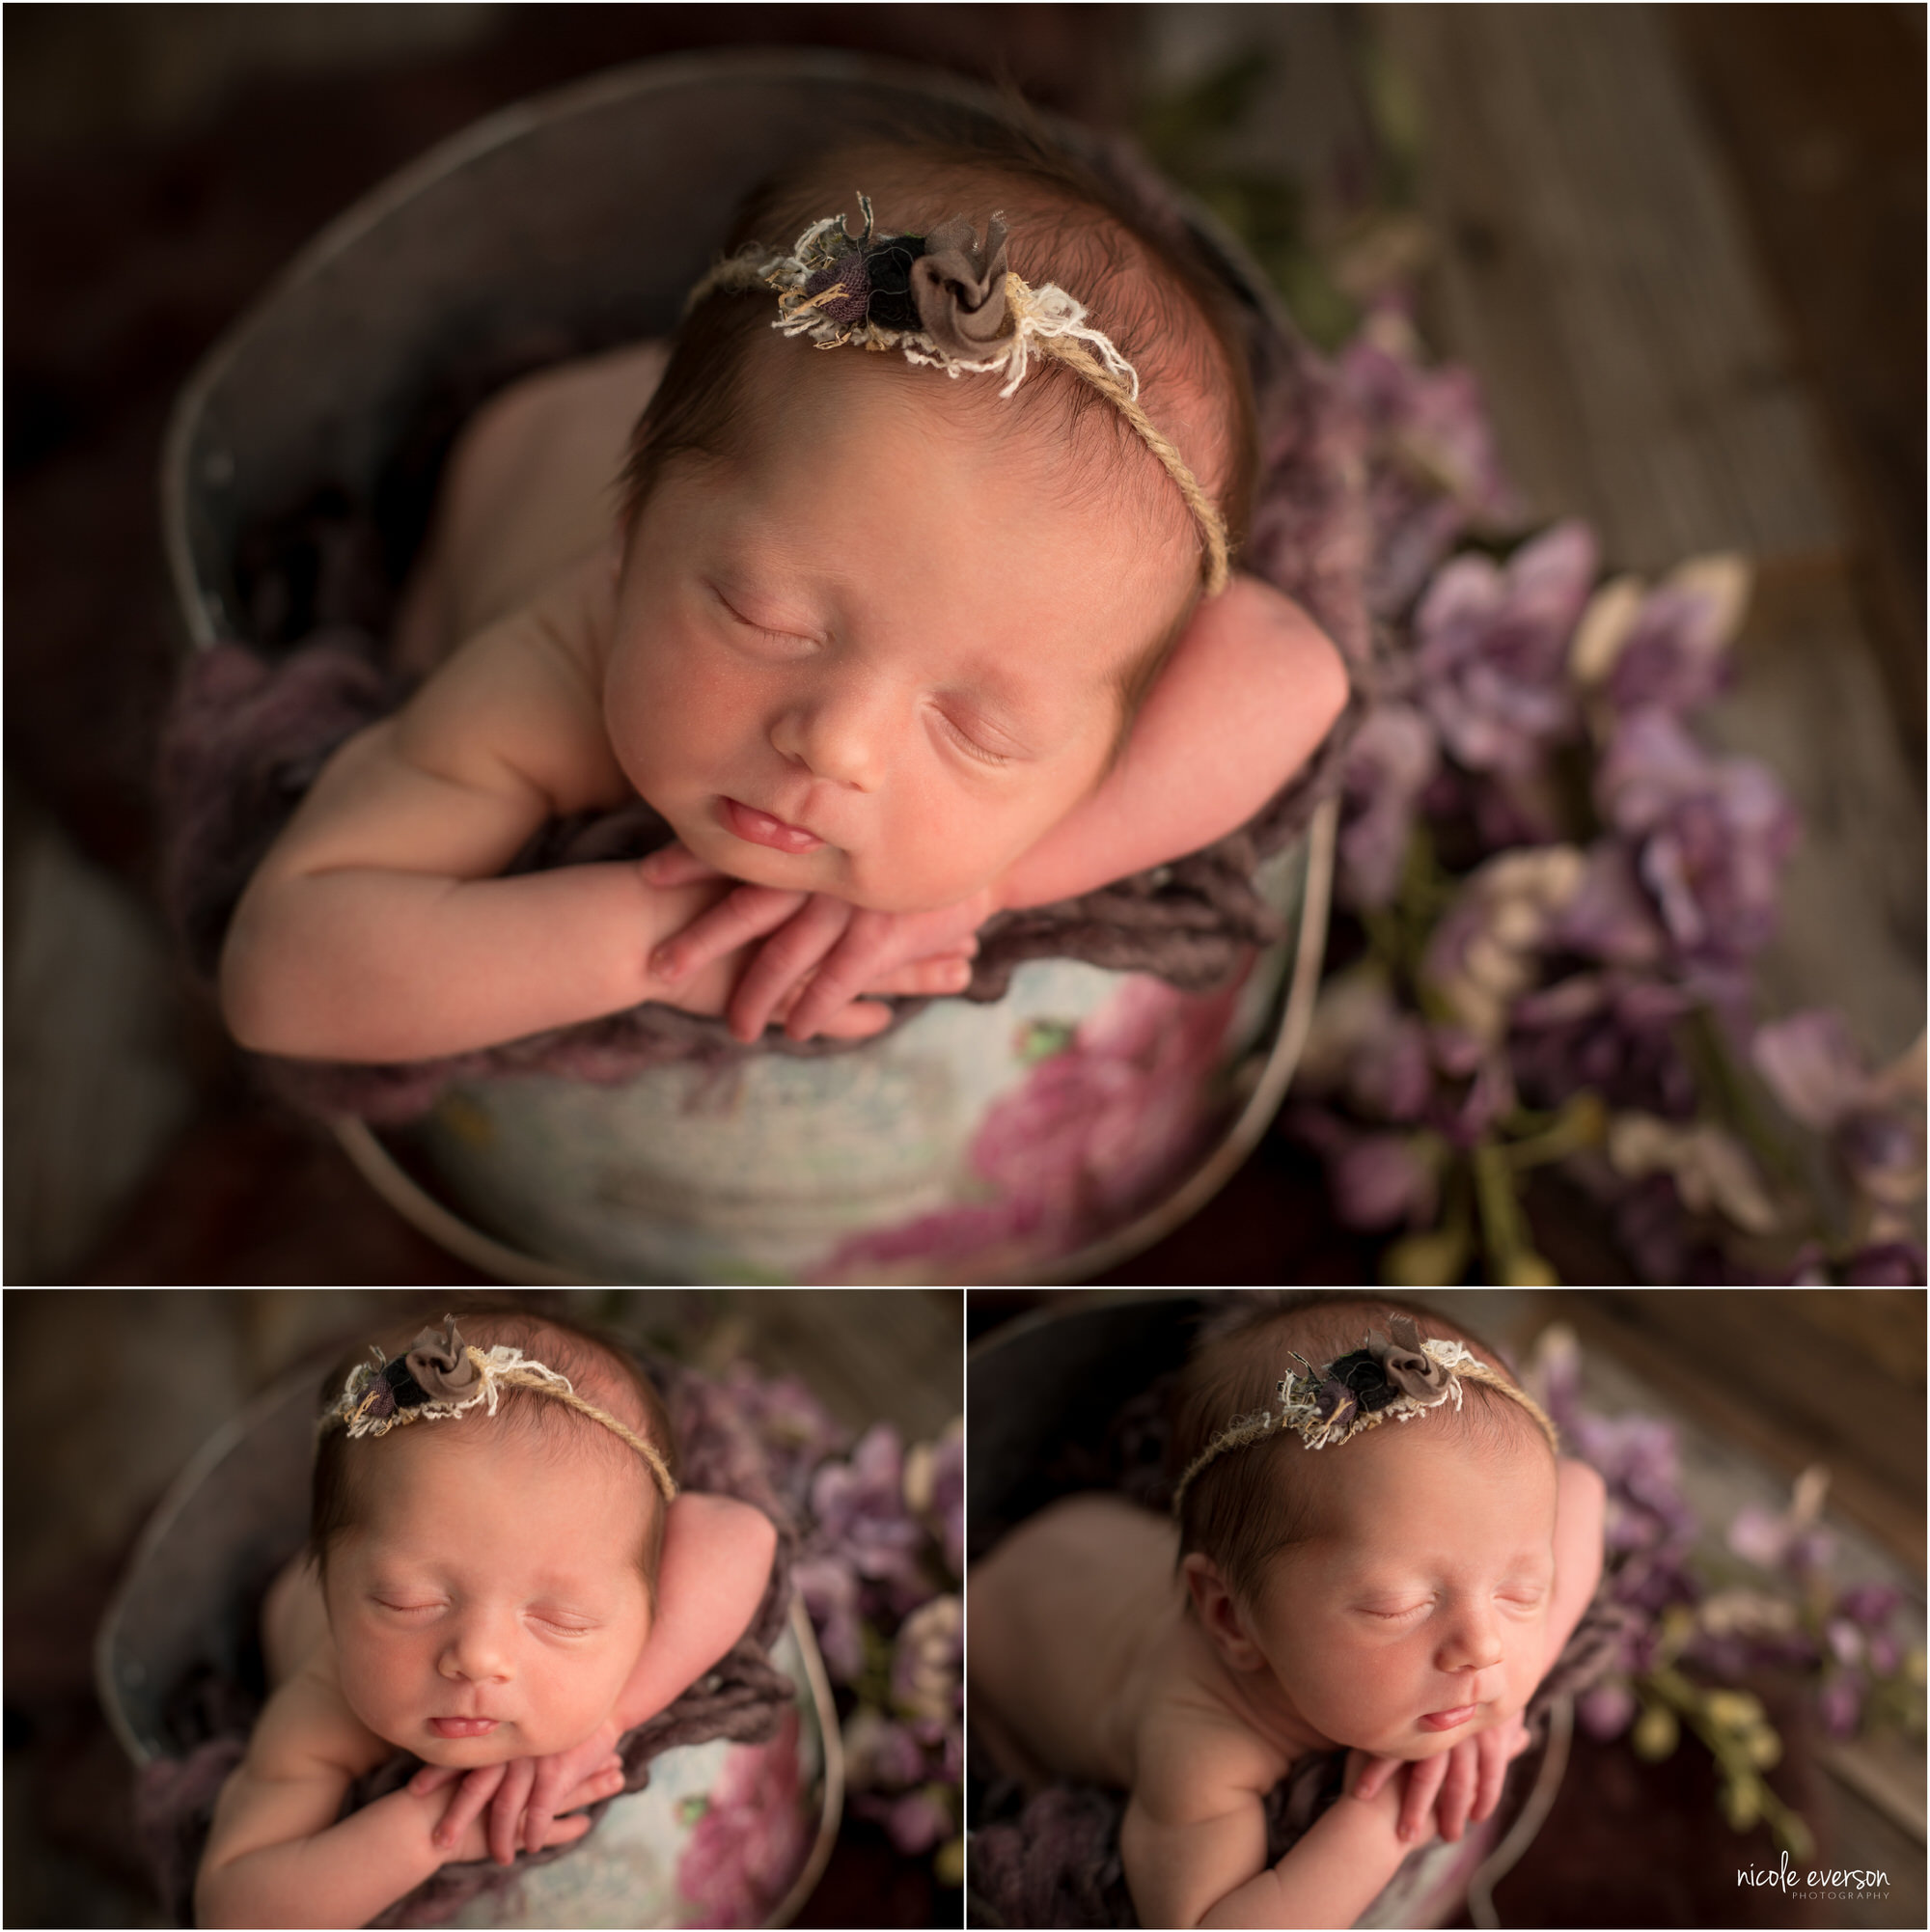 Baby girl twin in a silver pail laying on a soft purple blanket, surrounded by purple flowers. She is wearing a flower headband. Santa Rosa Newborn Photography. Nicole Everson Photography.